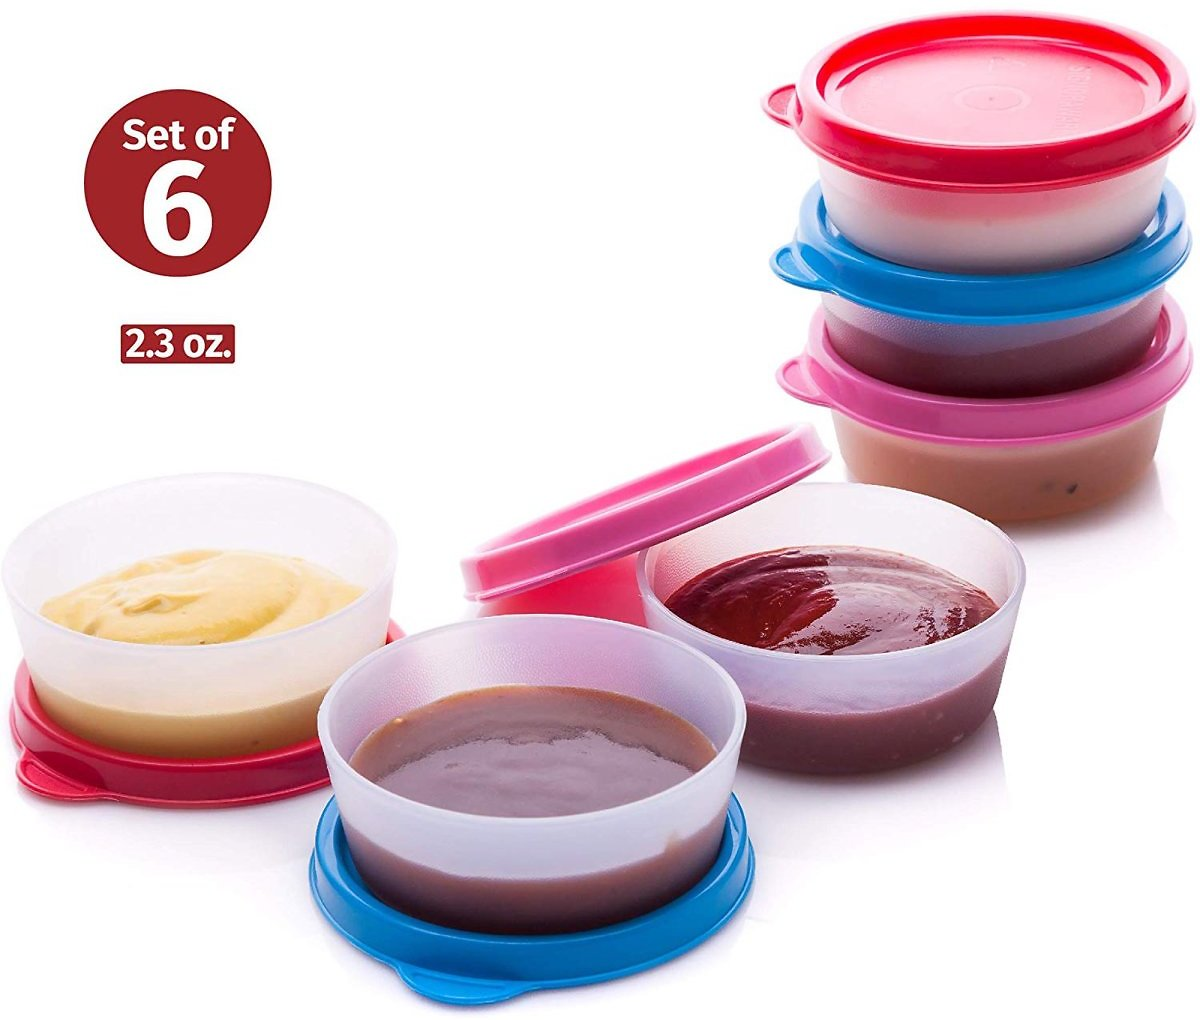 6 Pack Storage Containers with Lids Sauce Cups Leak Proof Reusable Plastic BPA Free 6 Pk. 2.3 Oz. for Lunch Box Picnic Travel